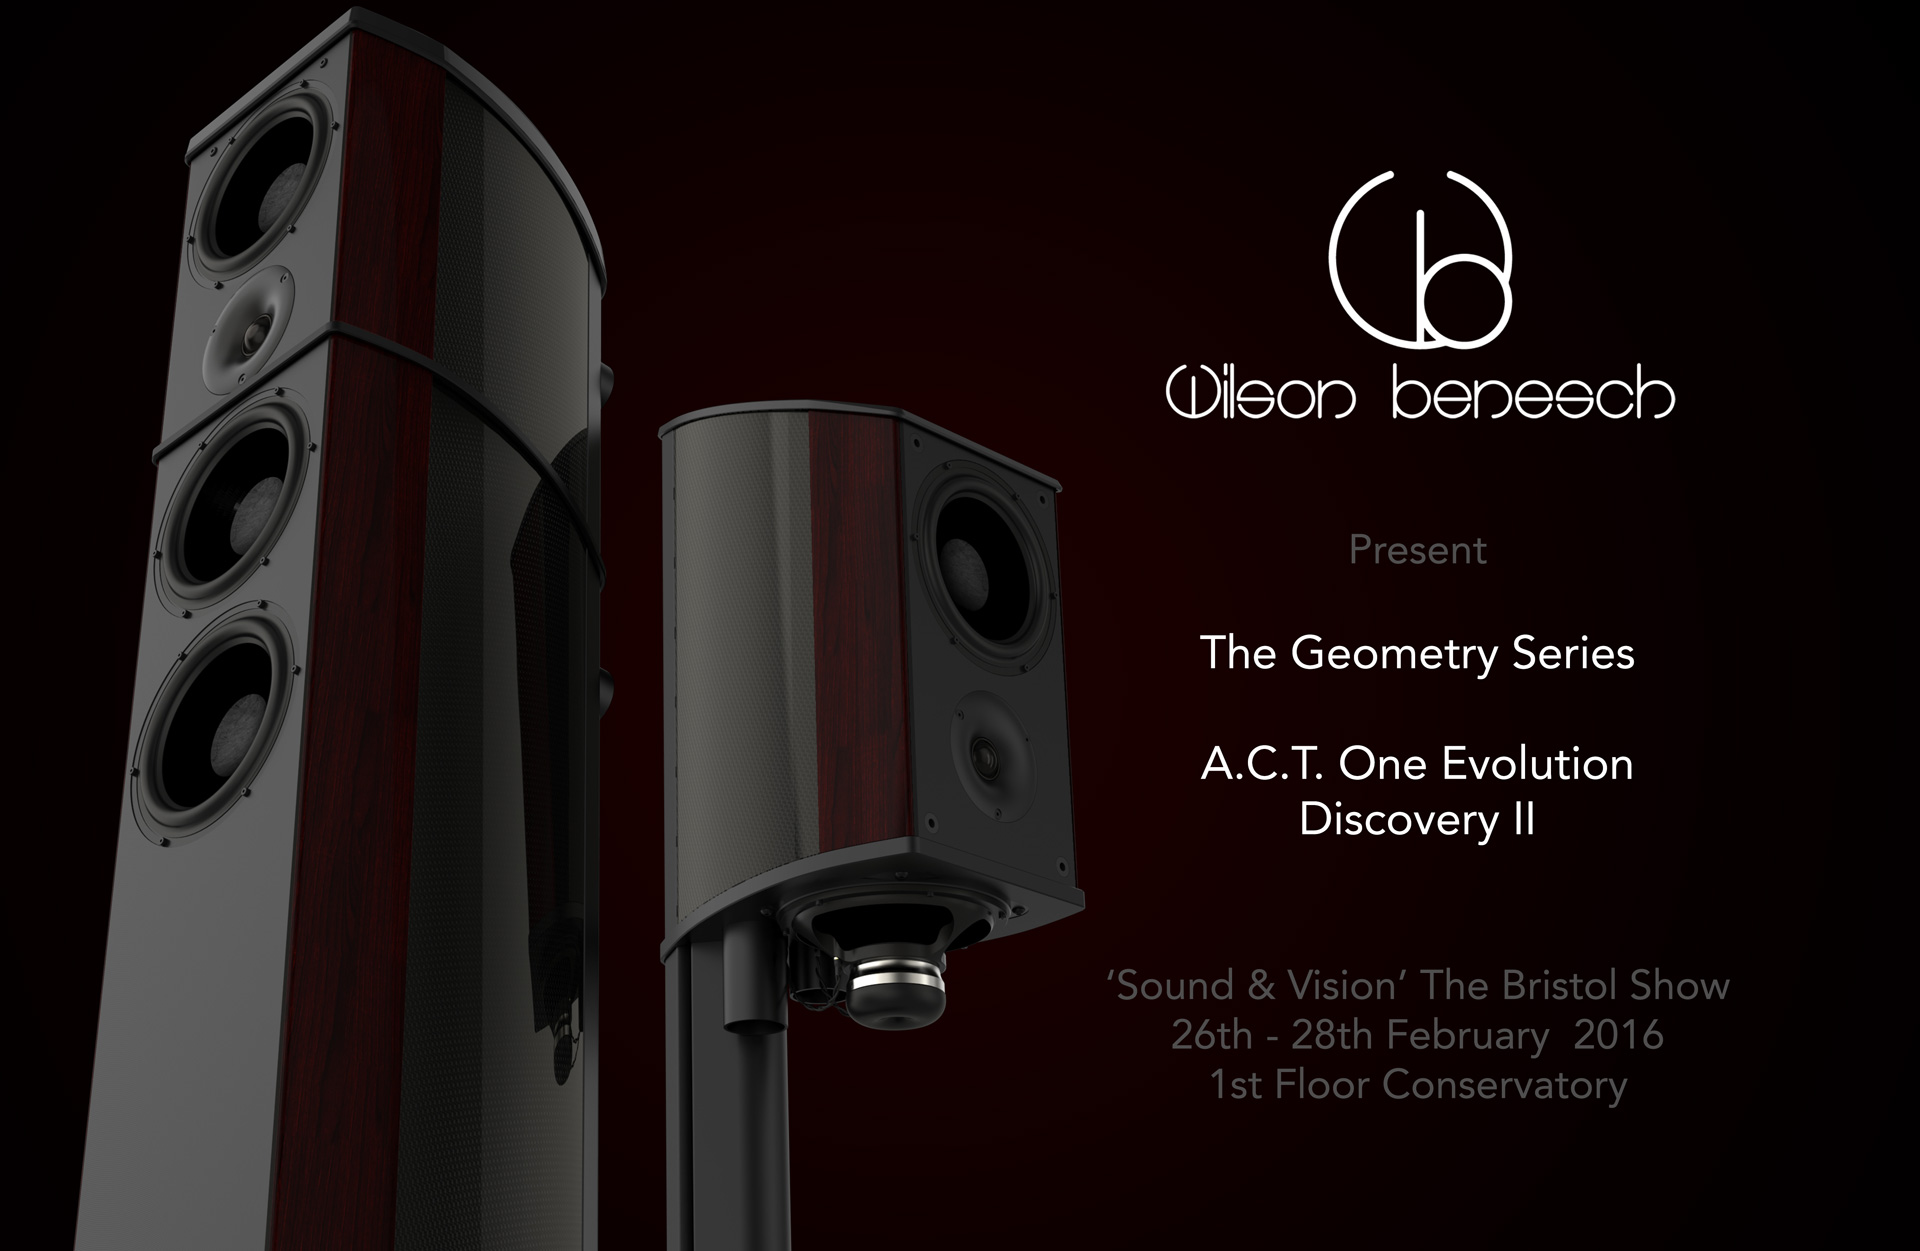 Wilson Benesch - Geometry Series - Sound & Vision The Bristol Show 2016 - A.C.T. One Evolution Loudspeaker - Discovery II Loudspeaker - HIFI - High End Audio